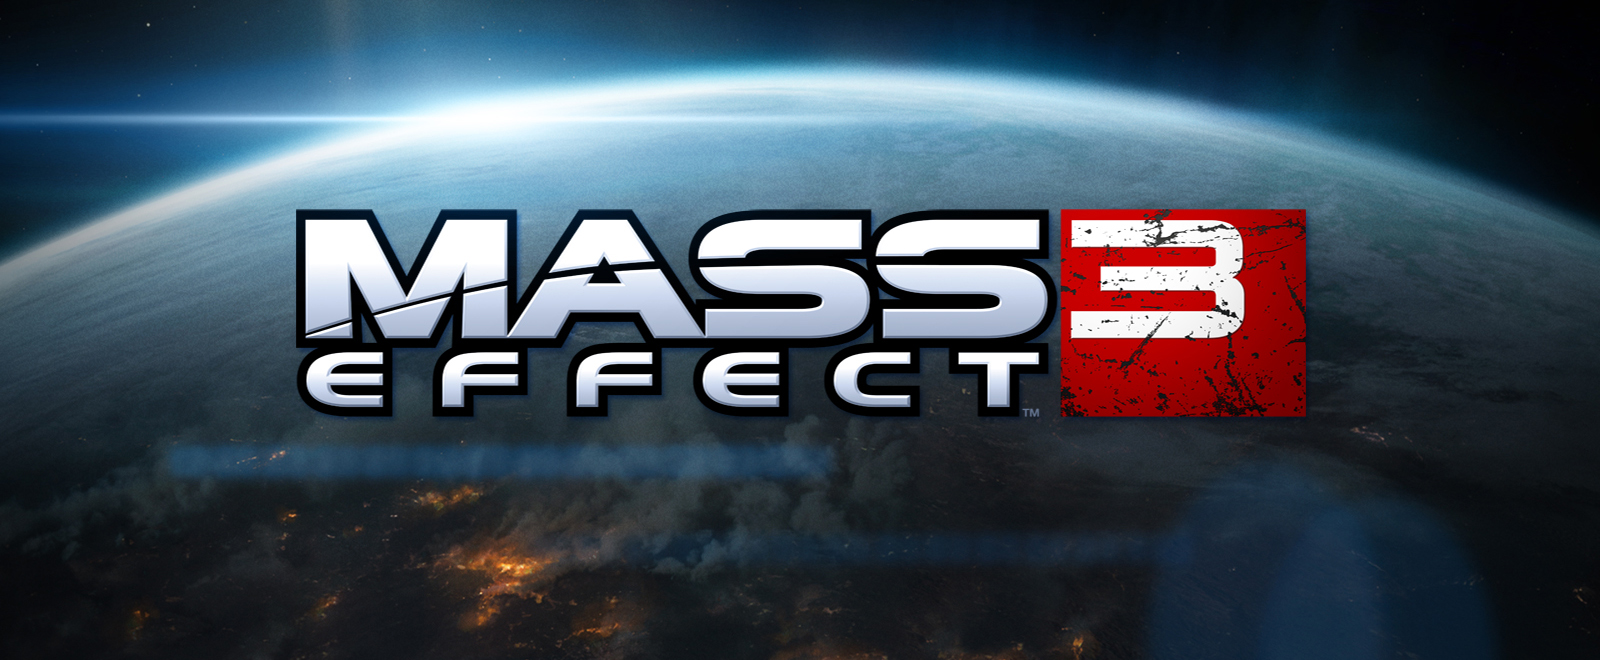 Mass Effect 3 - Tuchanka